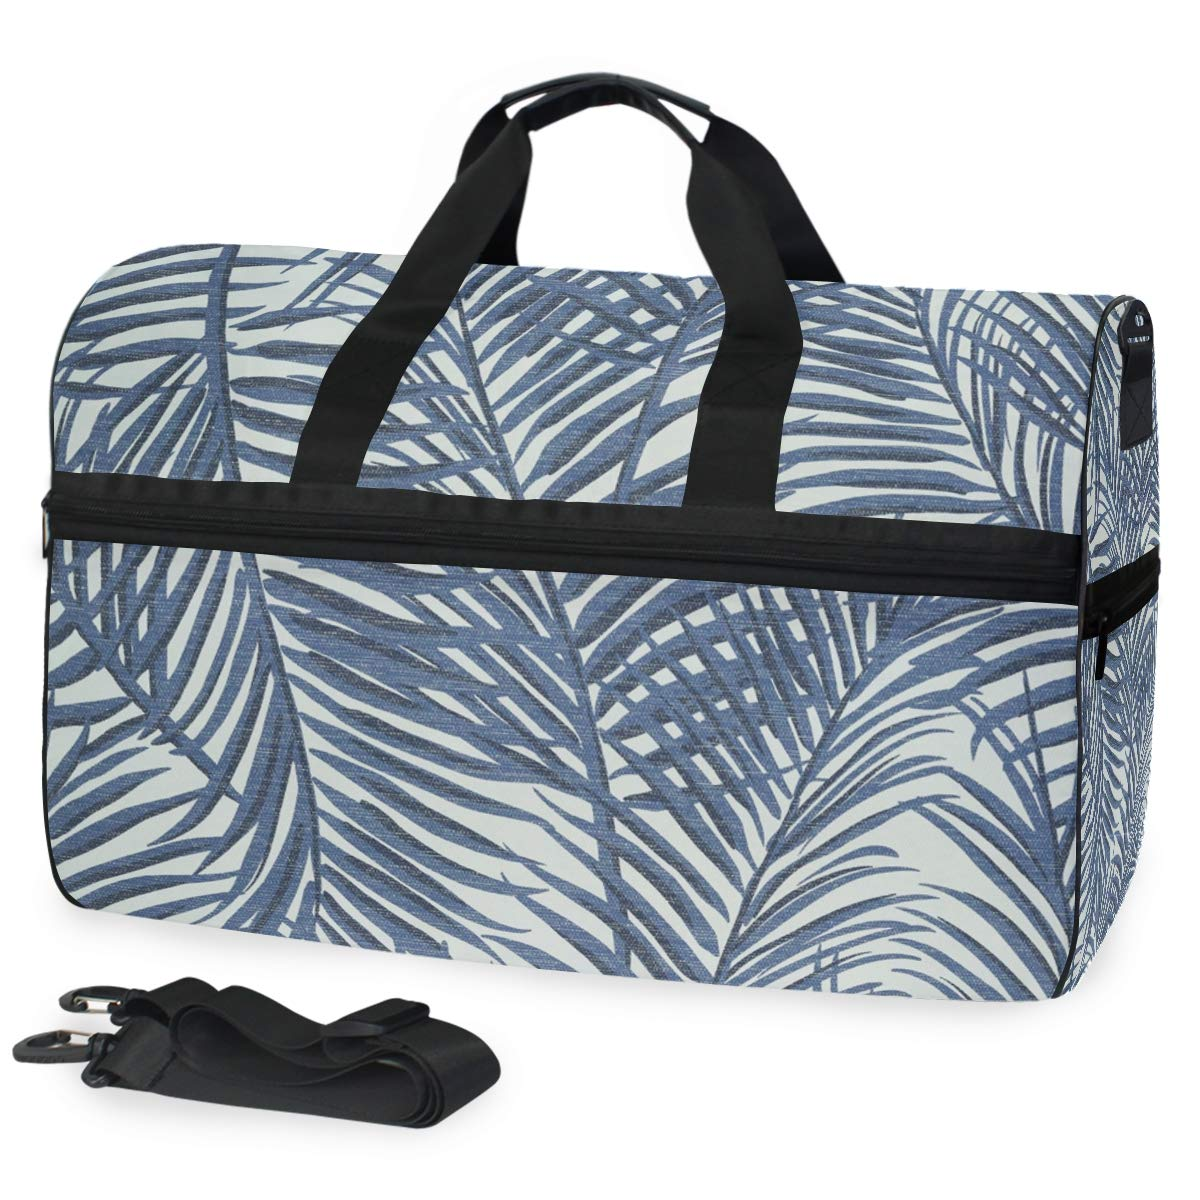 FAJRO Gym Bag Travel Duffel Express Weekender Bag Jean Color Leaves Grunge Texture Carry On Luggage with Shoe Pouch